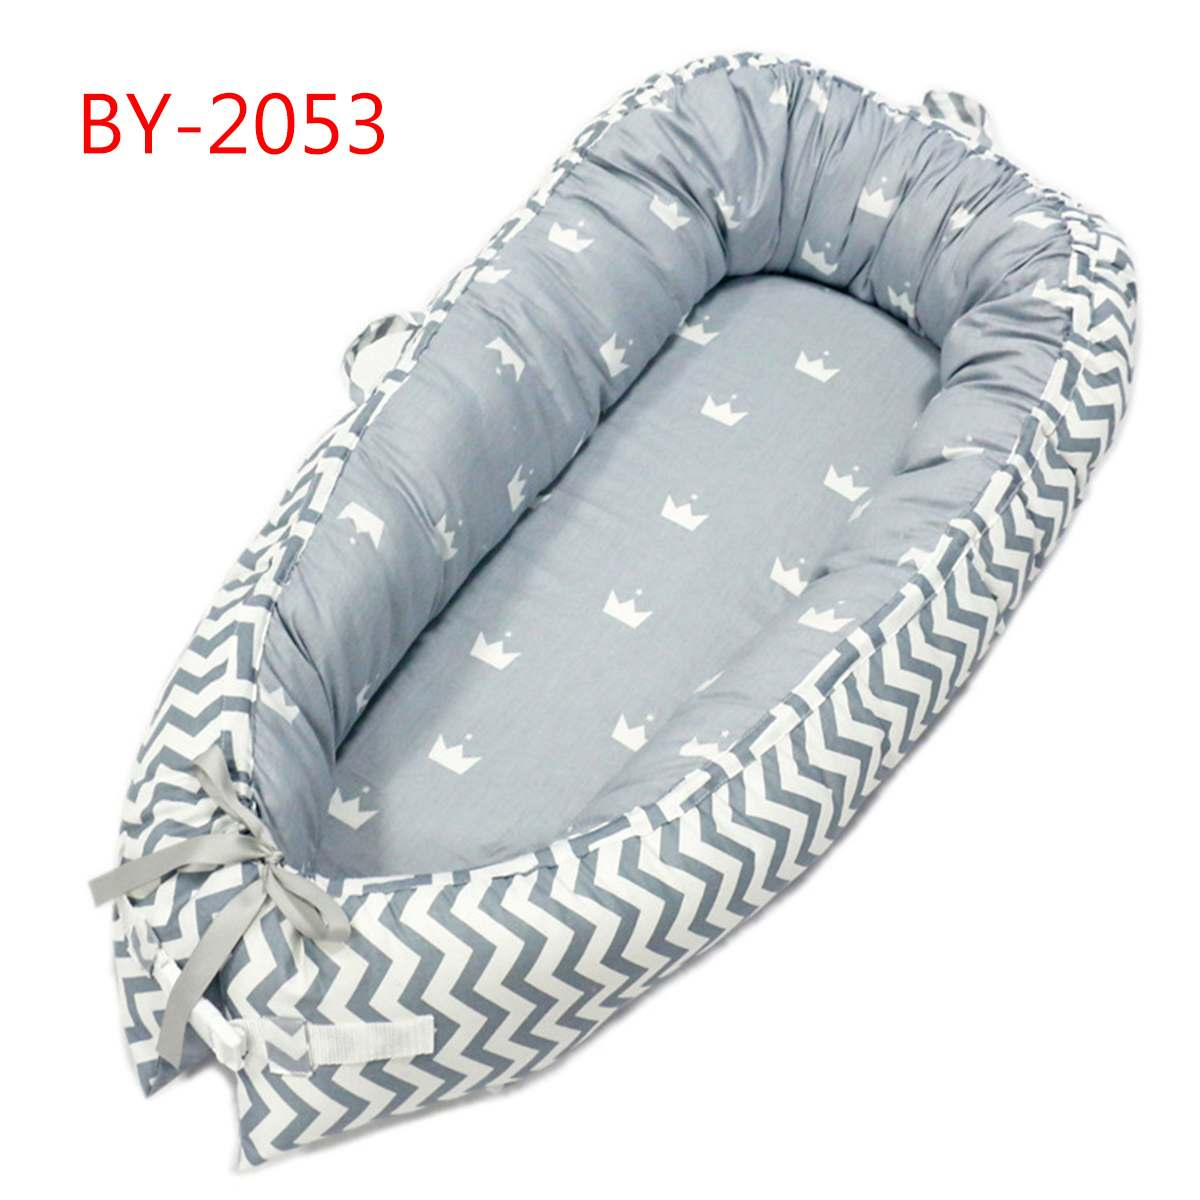 Dismountable Baby Crib Nursery Portable Infant Toddler Cradle Multifunction Newborn Bumper Sleeping Bag For Baby Care 50*80cm